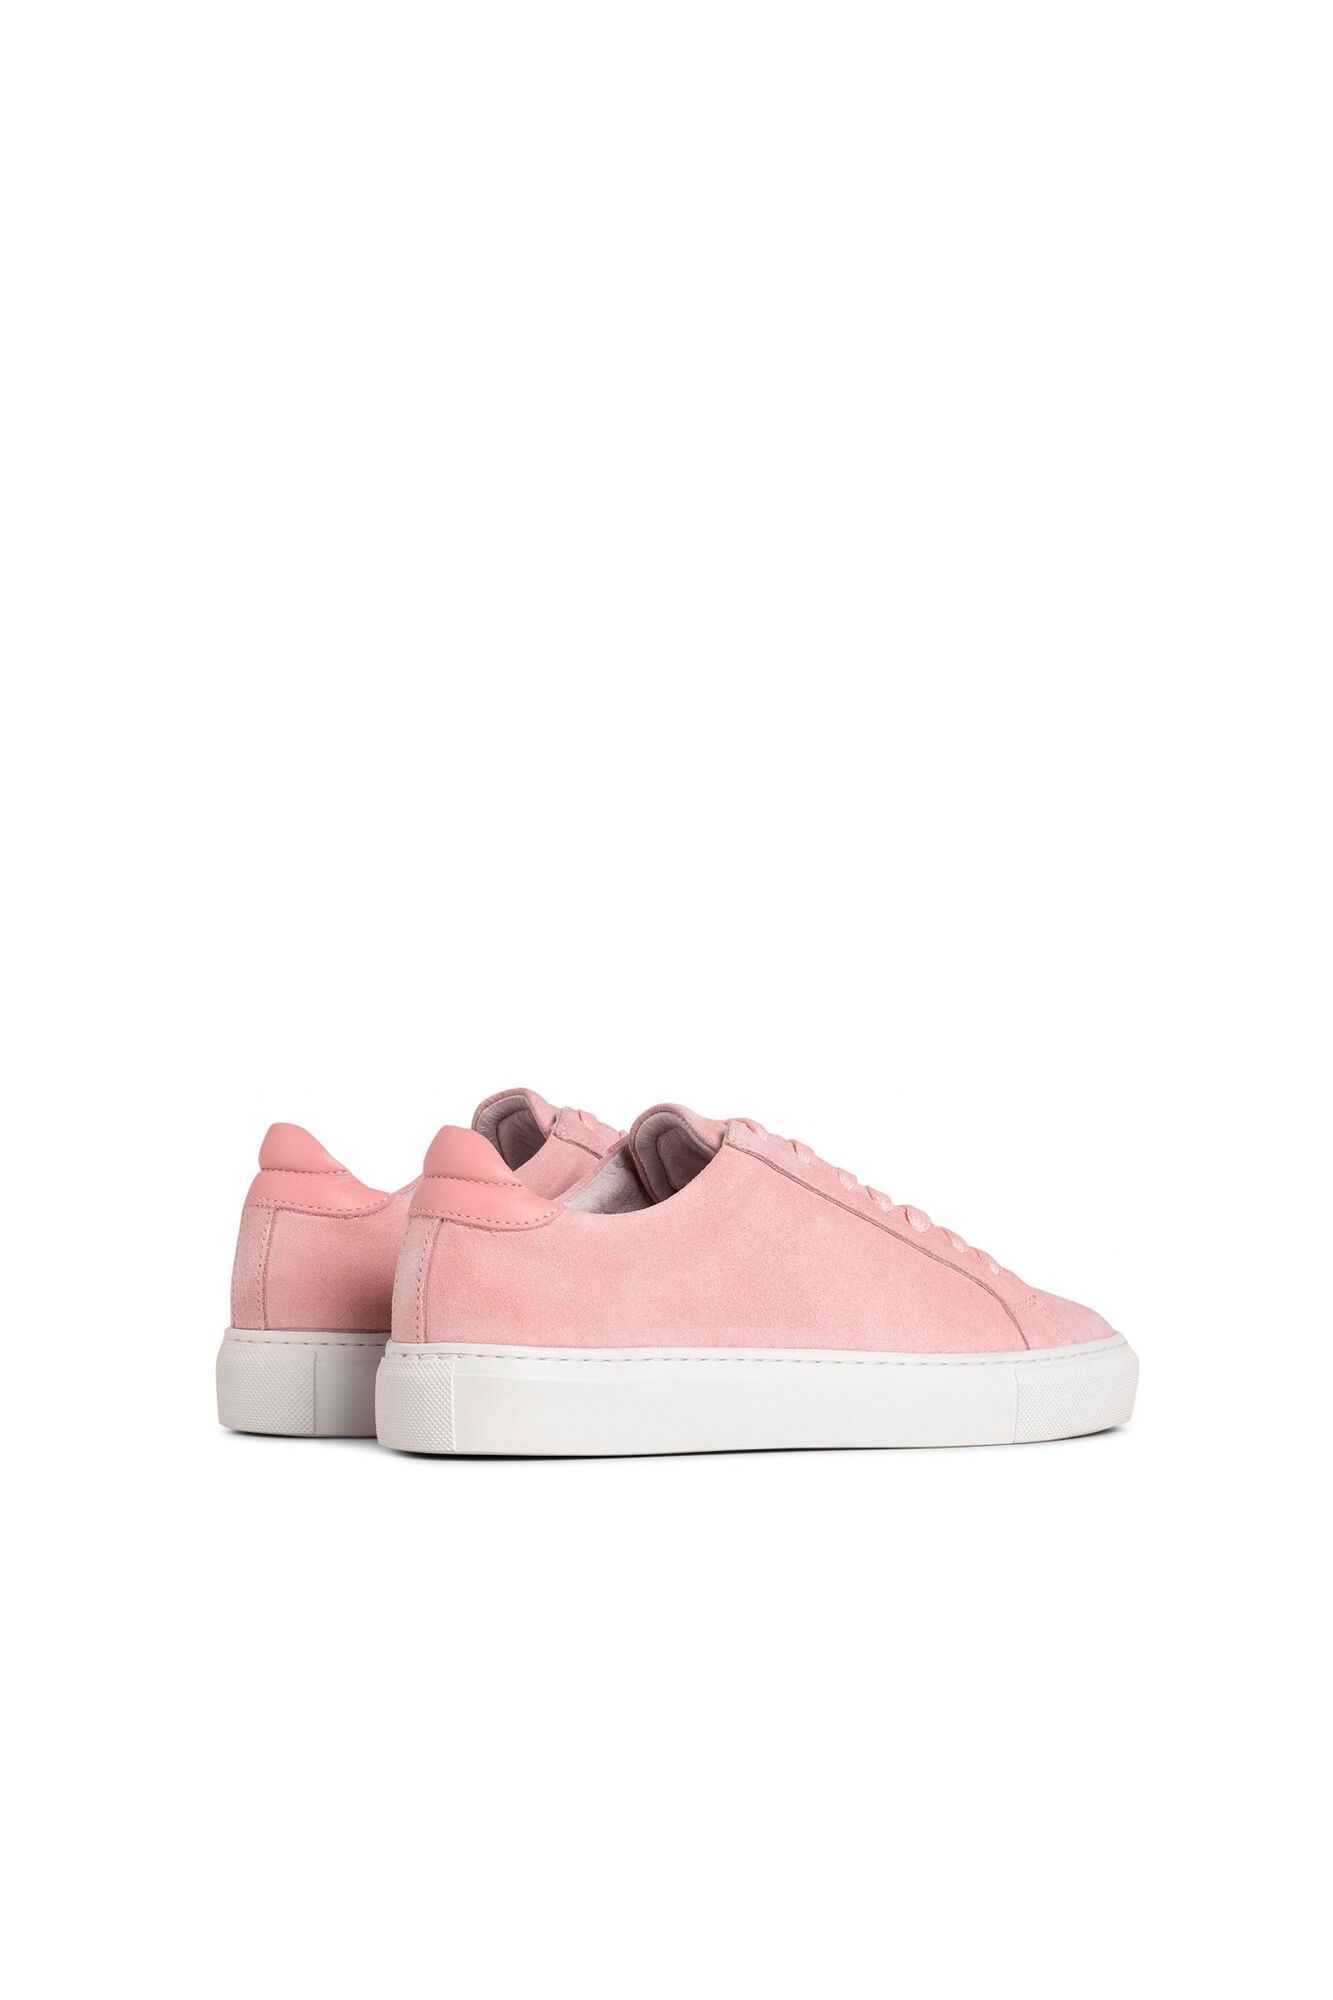 Type GPW1834, BABY PINK